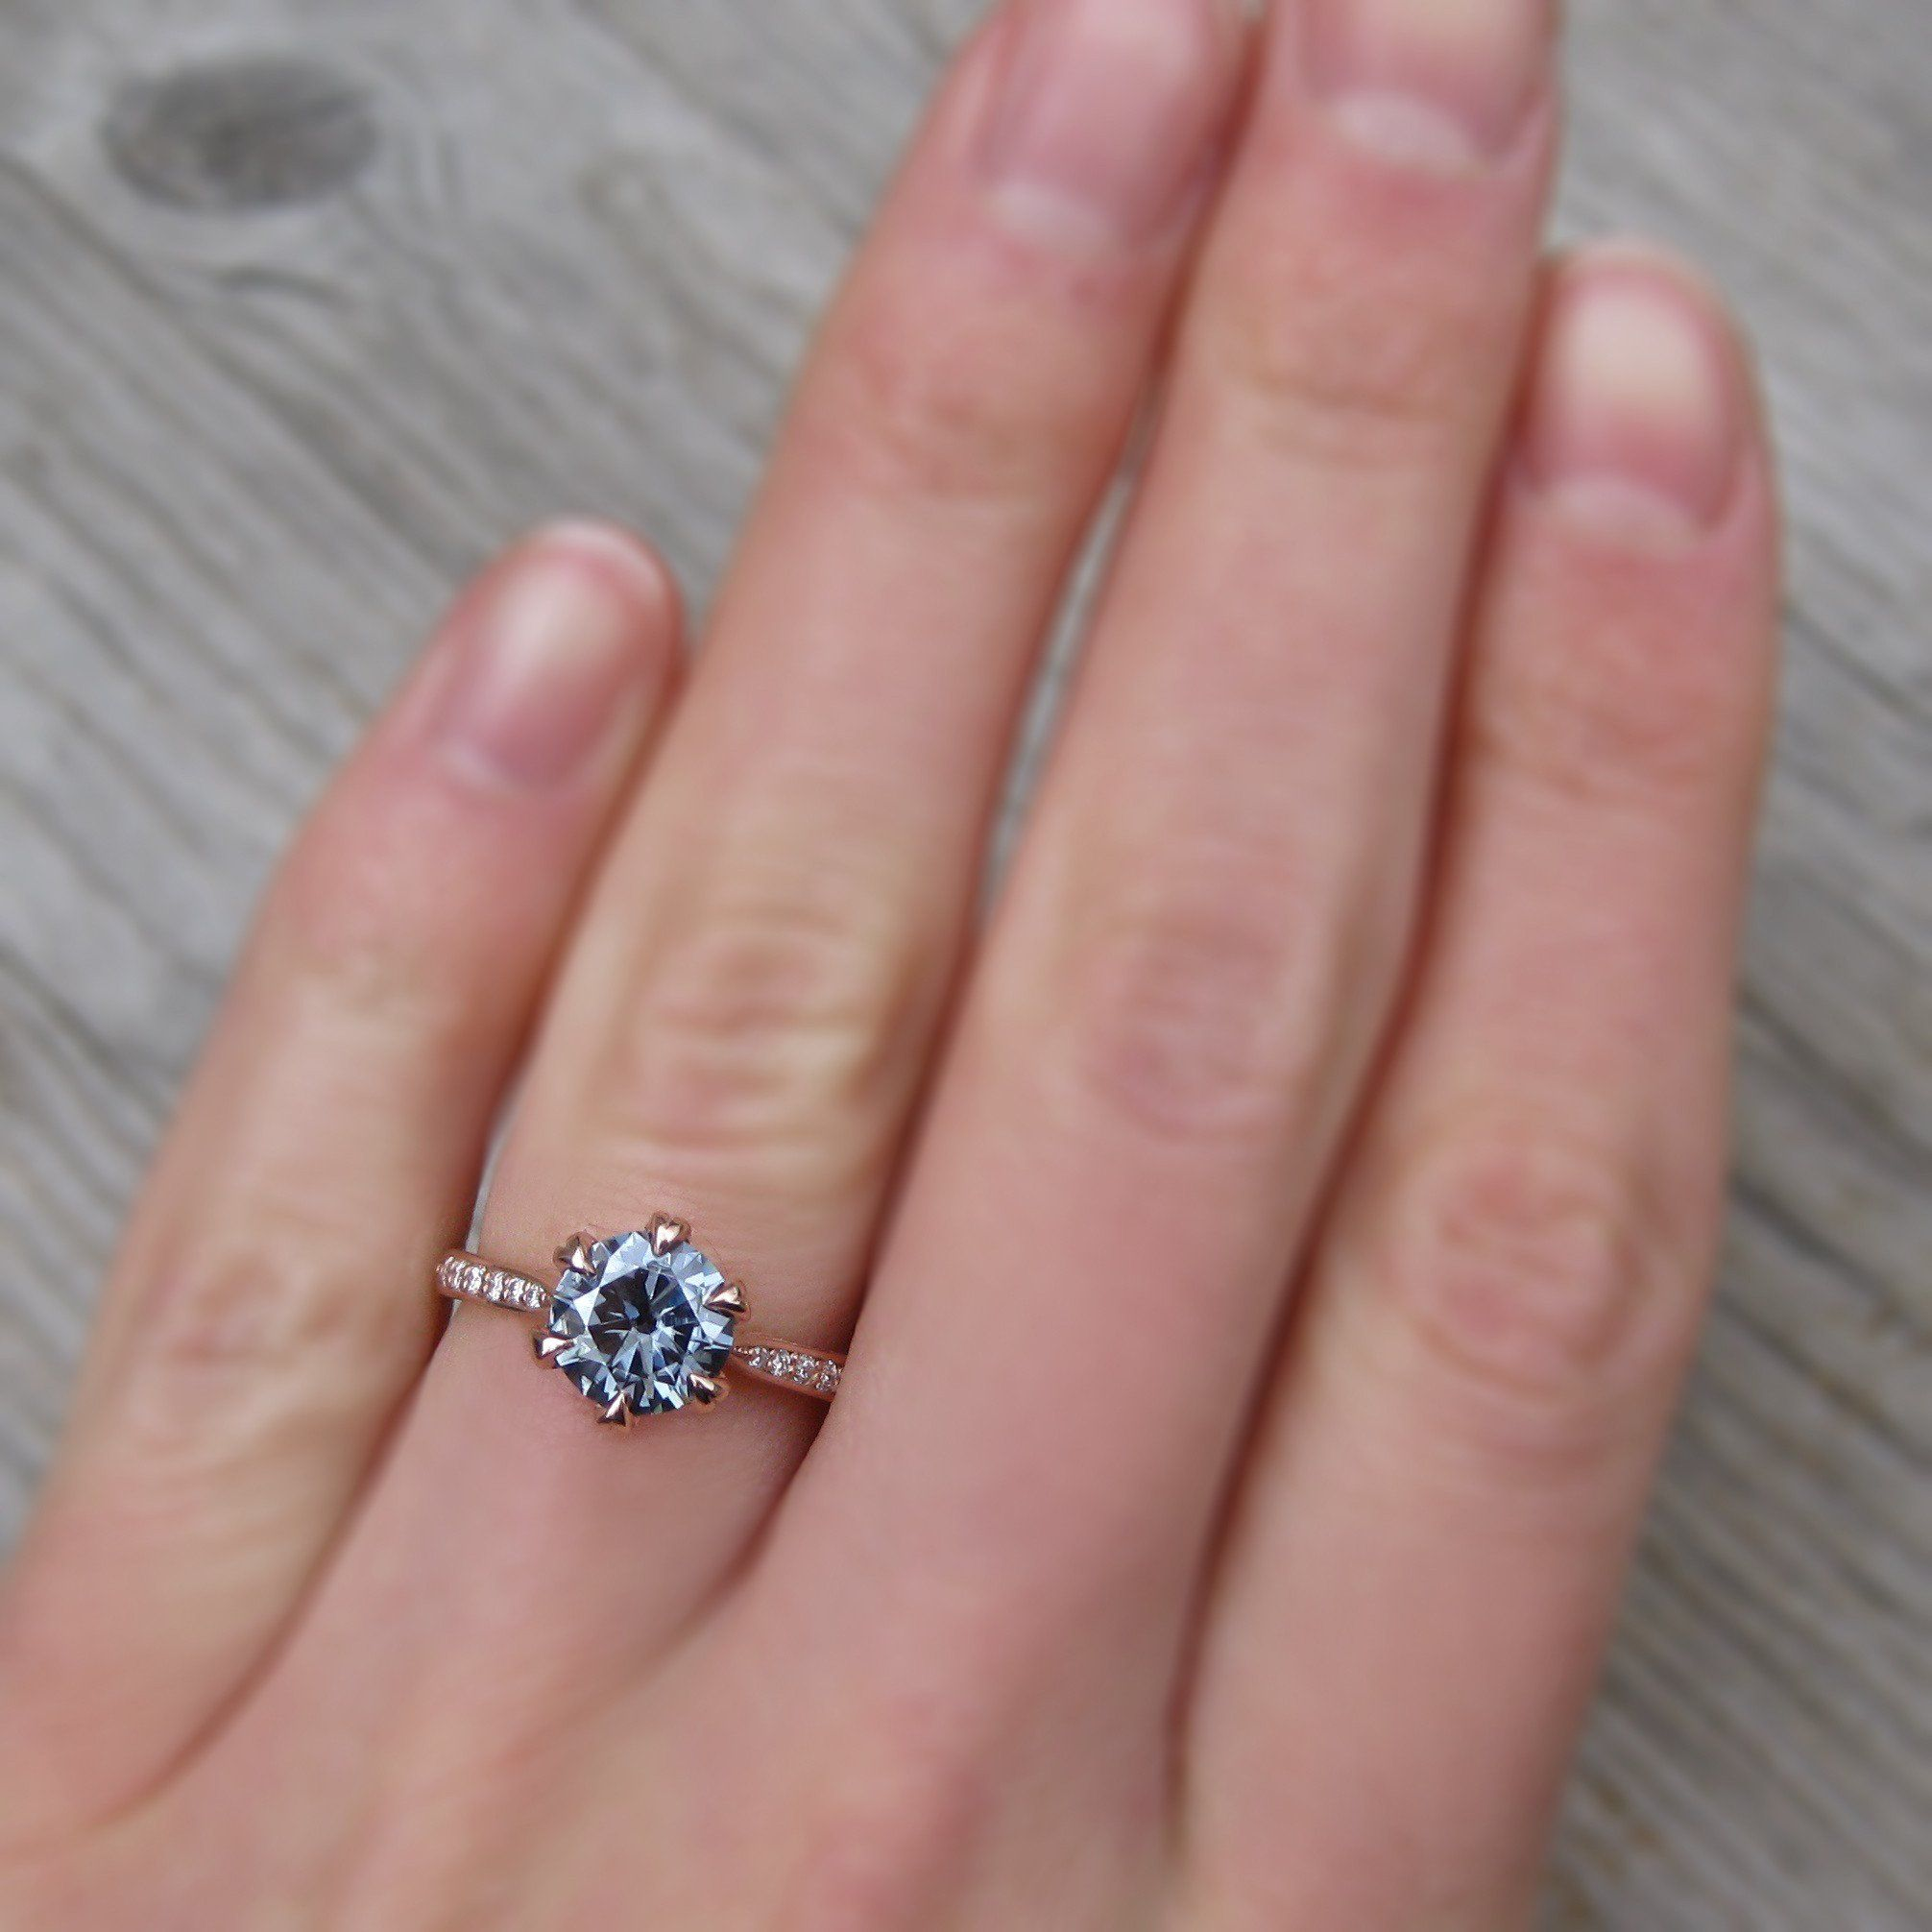 Ethical engagement ring with a 1ct grey moissanite and conflict-free ...